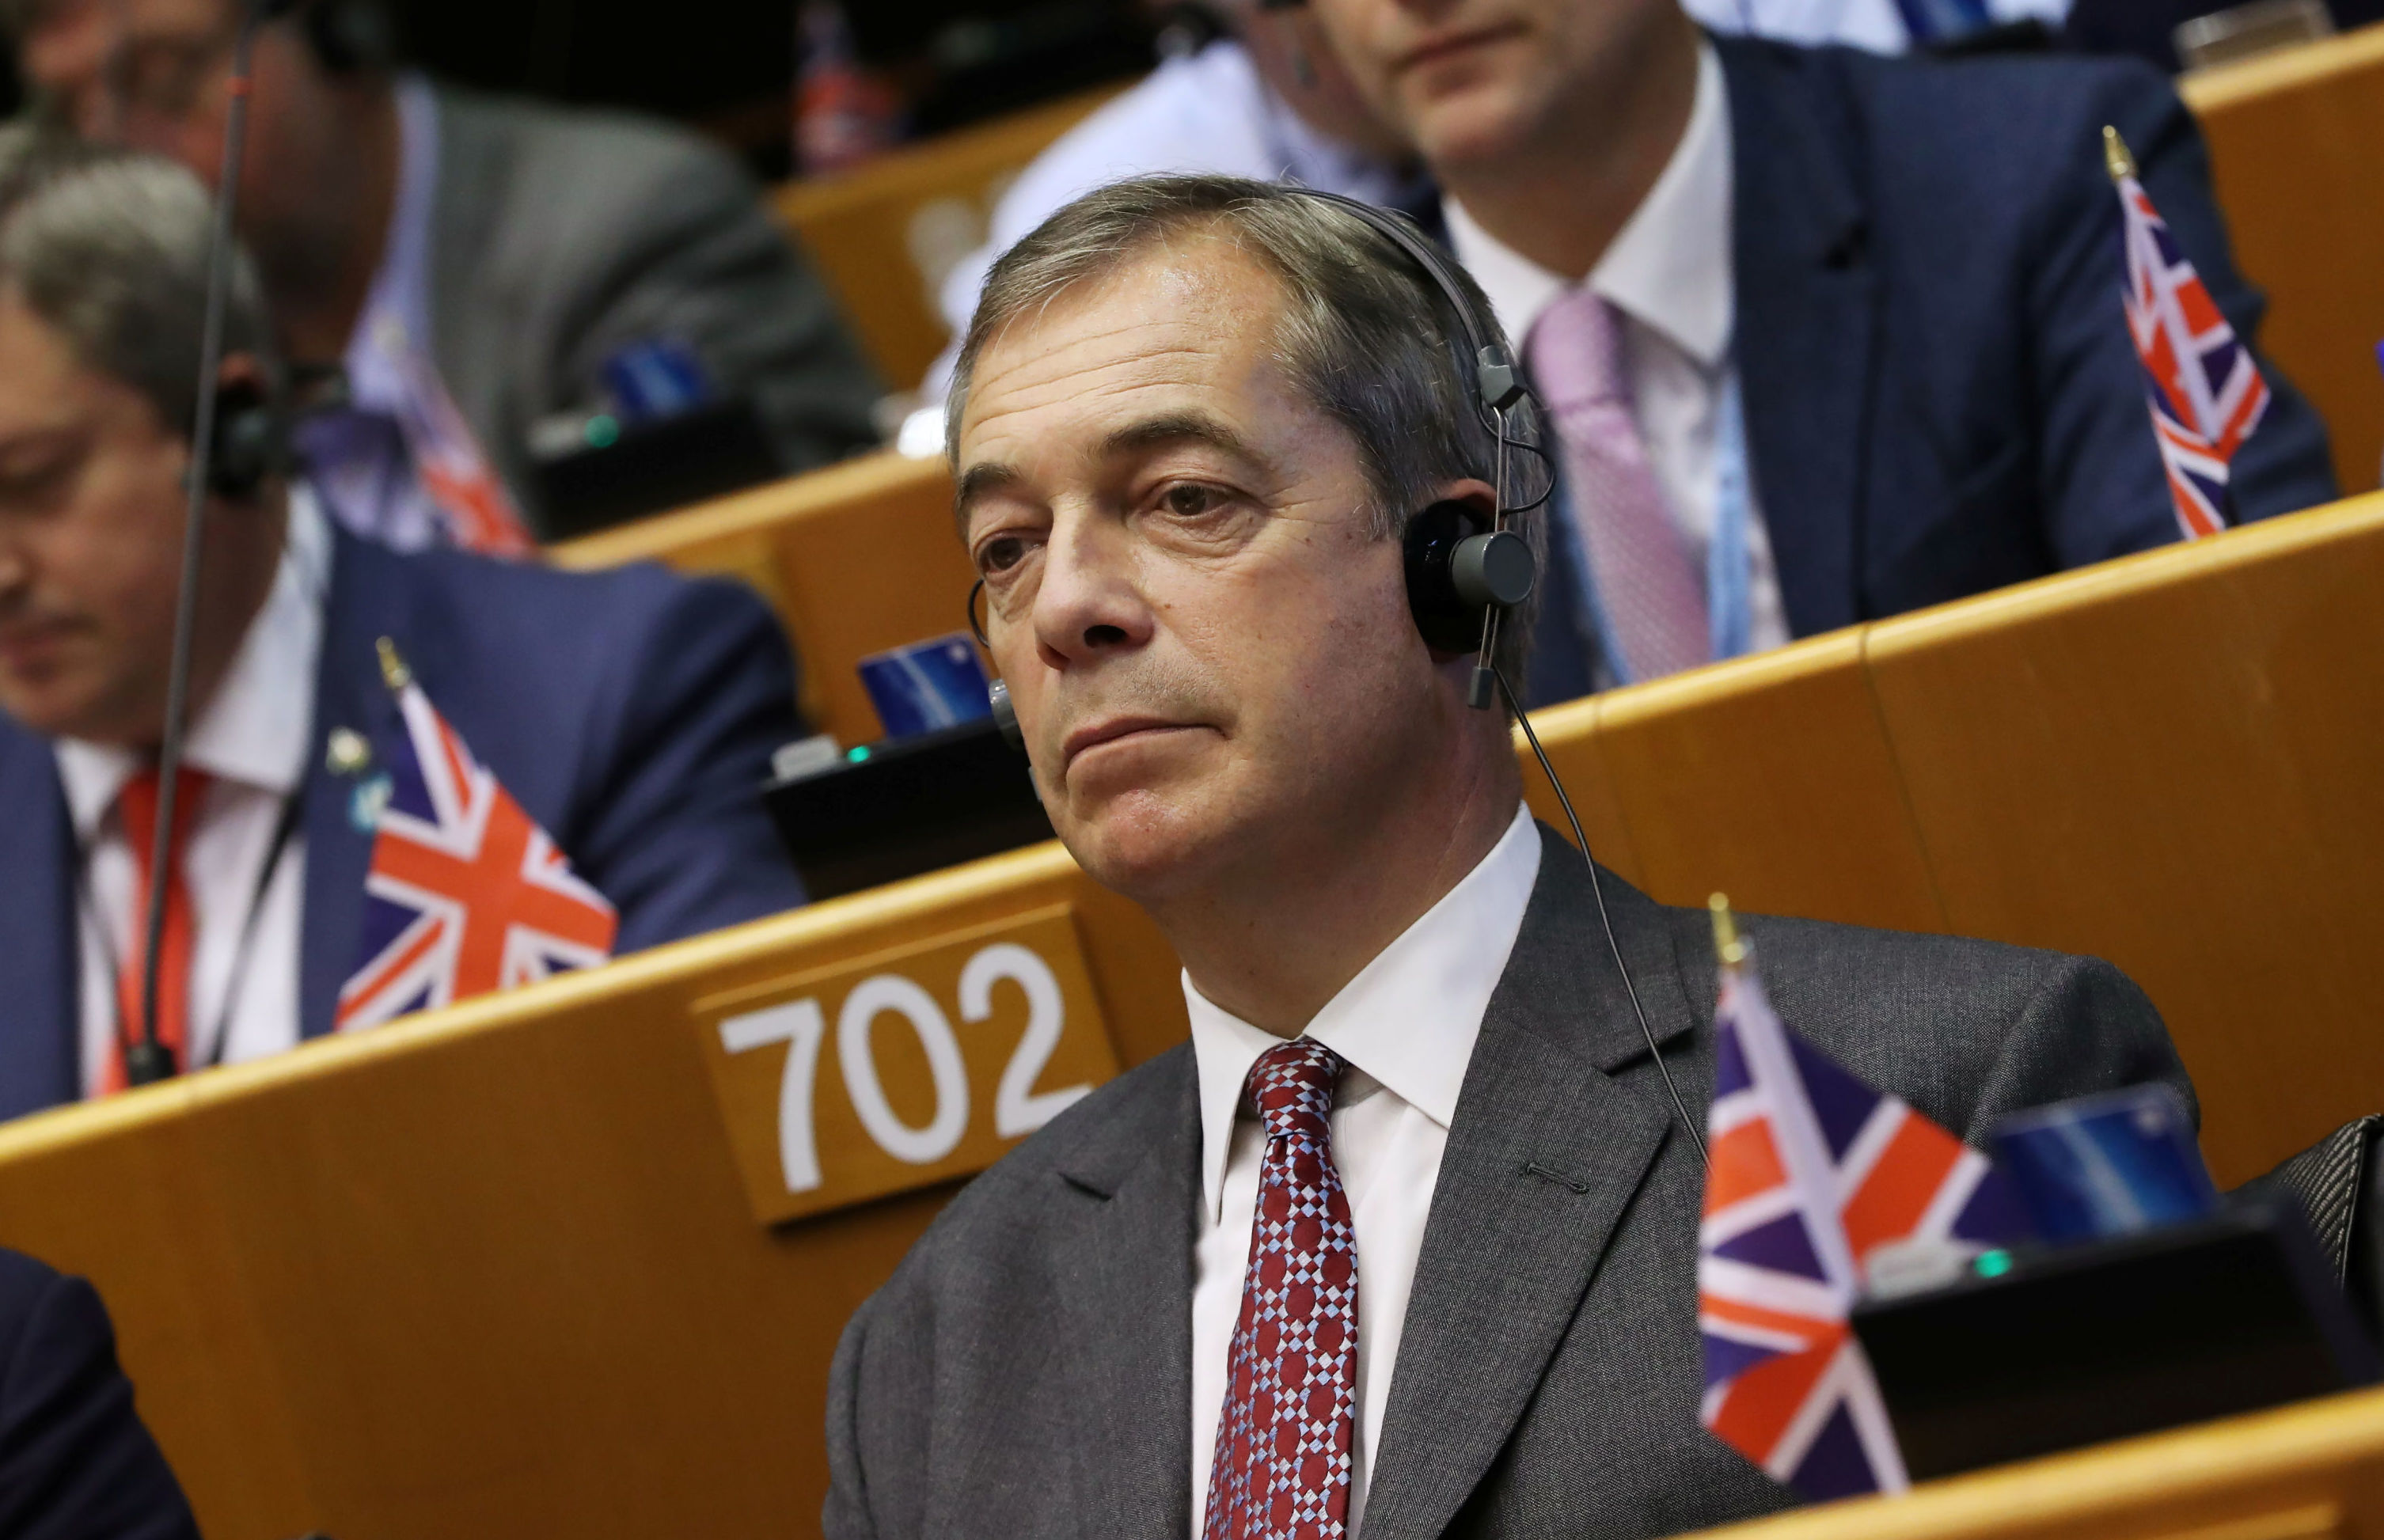 Britain's Brexit Party leader Nigel Farage attends a plenary session on preparations for the next EU leaders' summit, at the European Parliament in Brussels, Belgium October 9, 2019